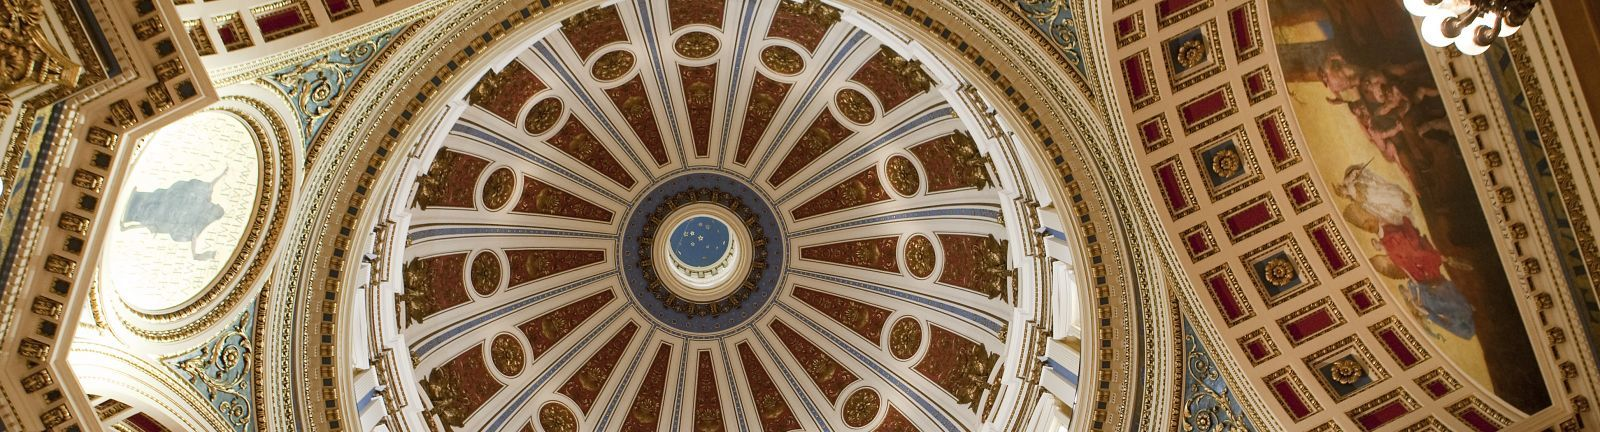 An interior view of the Pennsylvania capitol building dome in Harrisburg